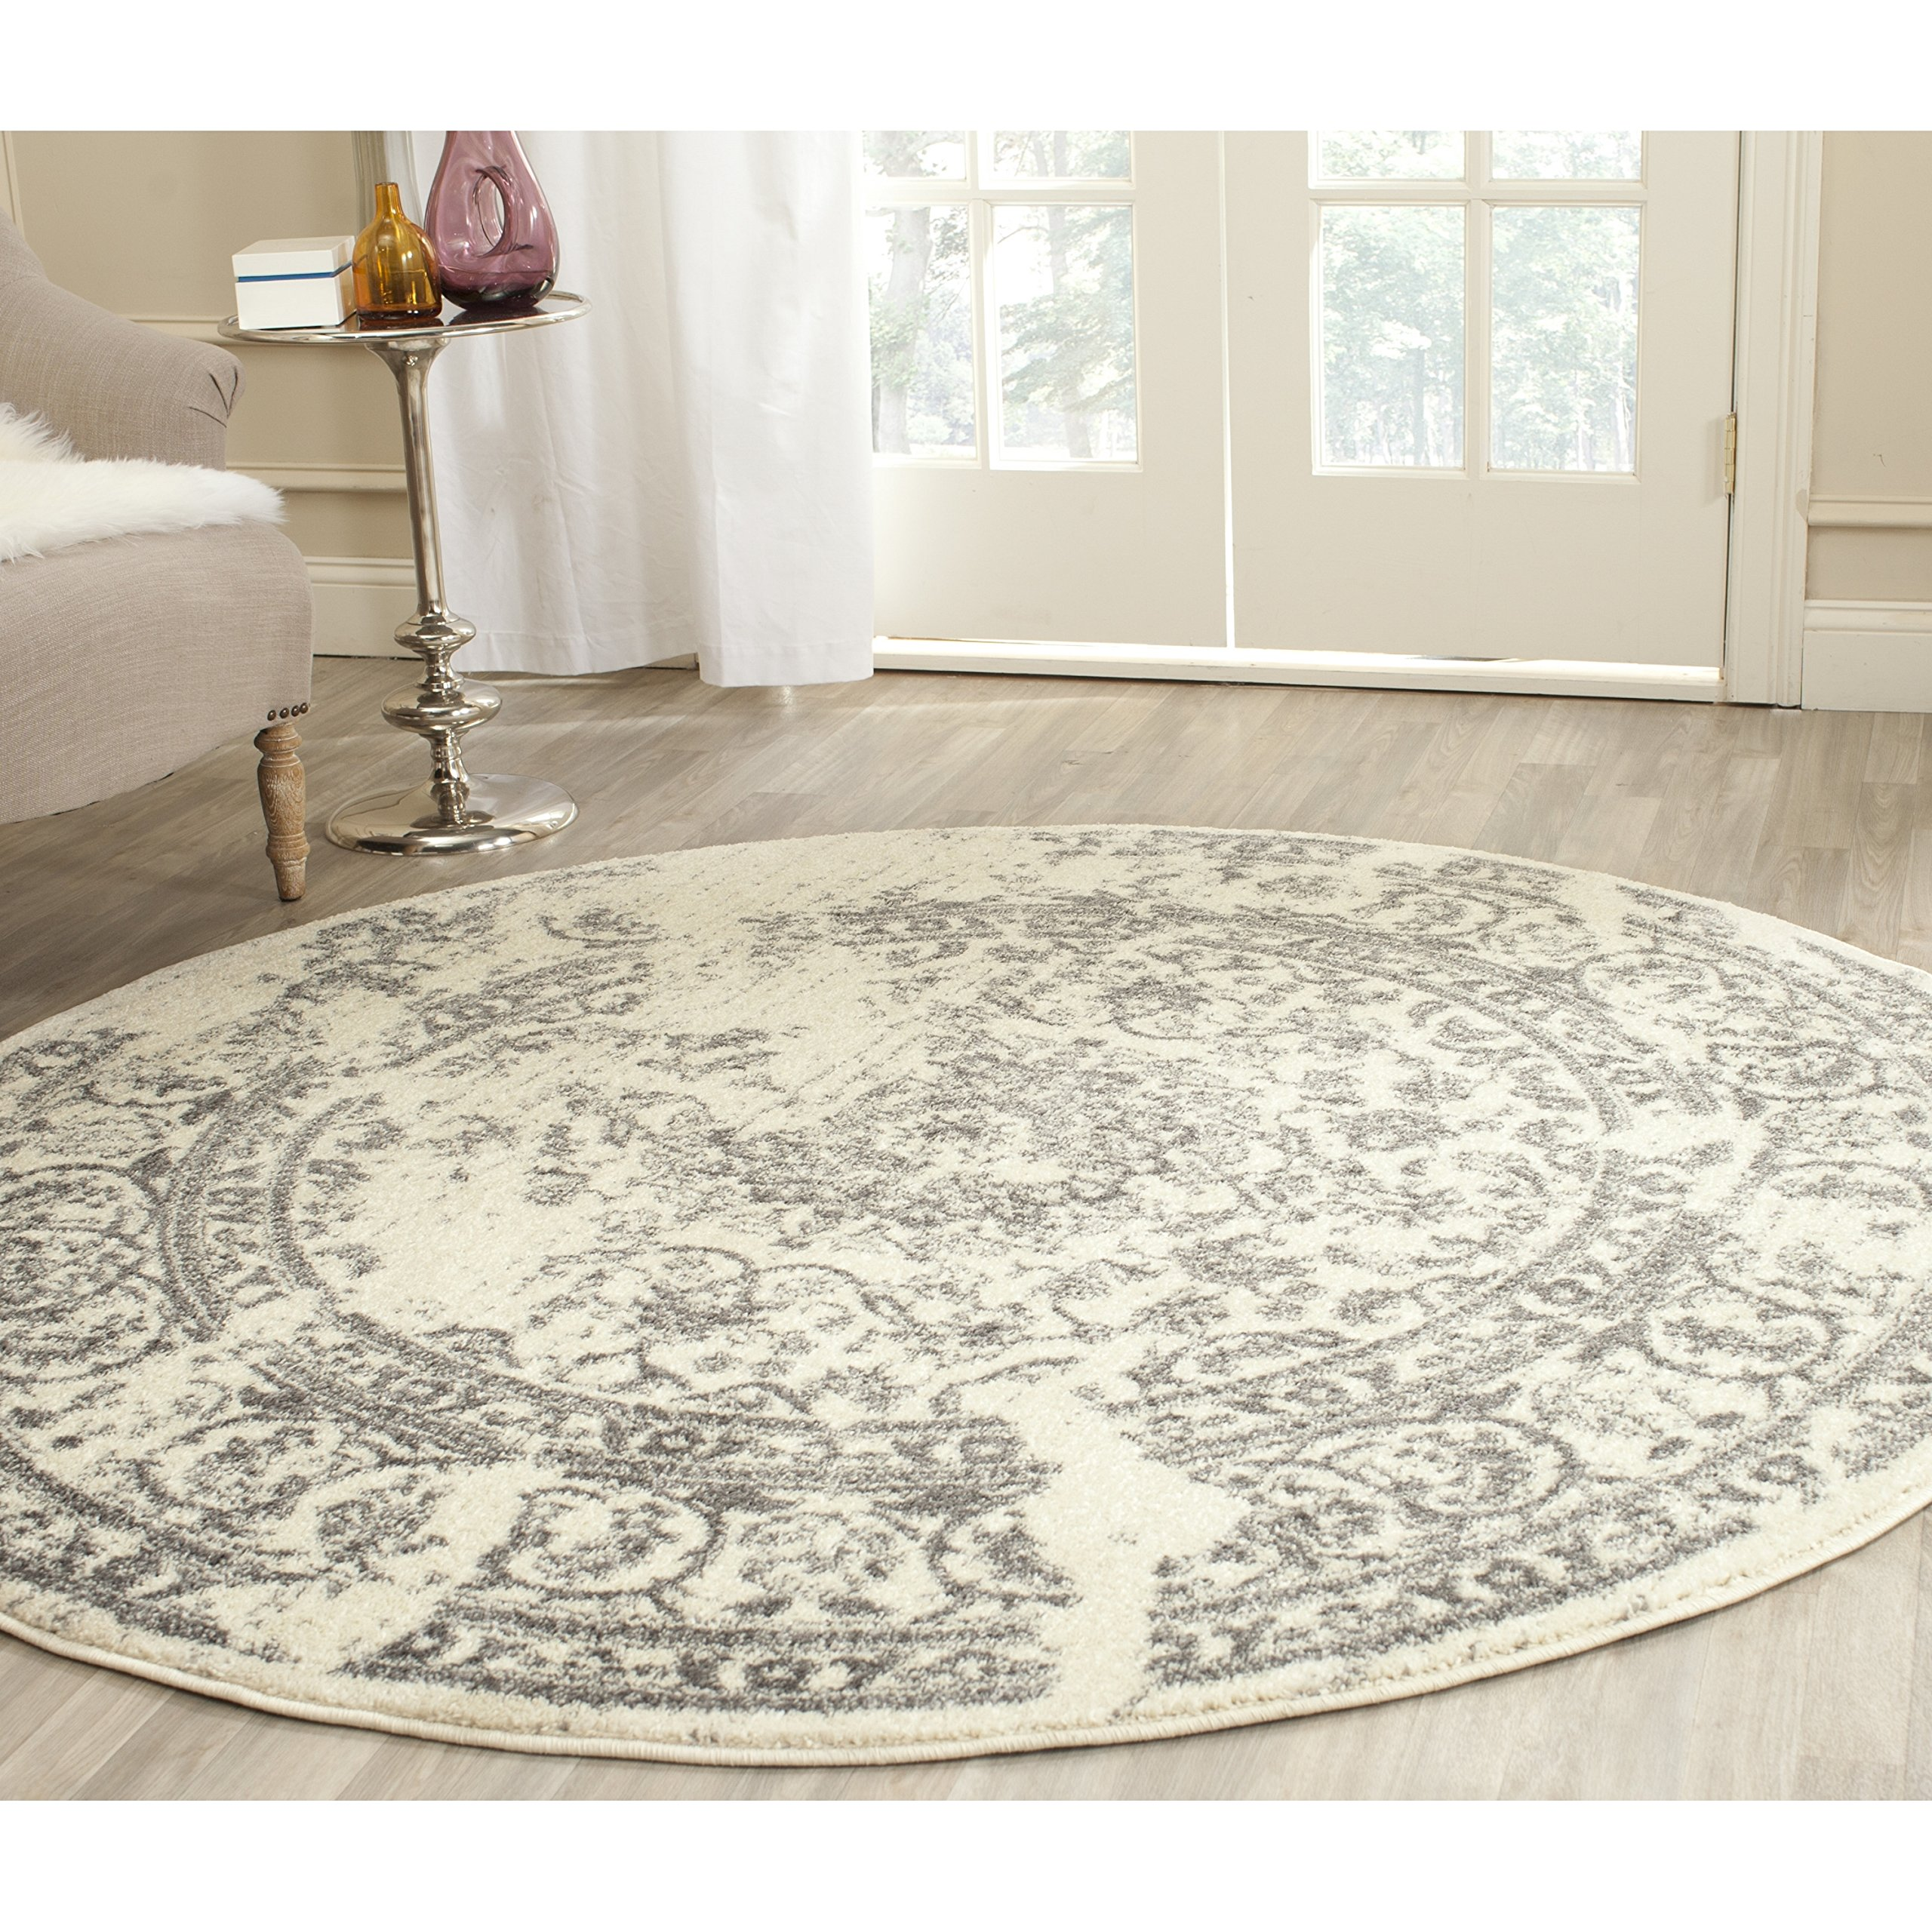 Safavieh Adirondack Collection Adr101b Ivory And Silver